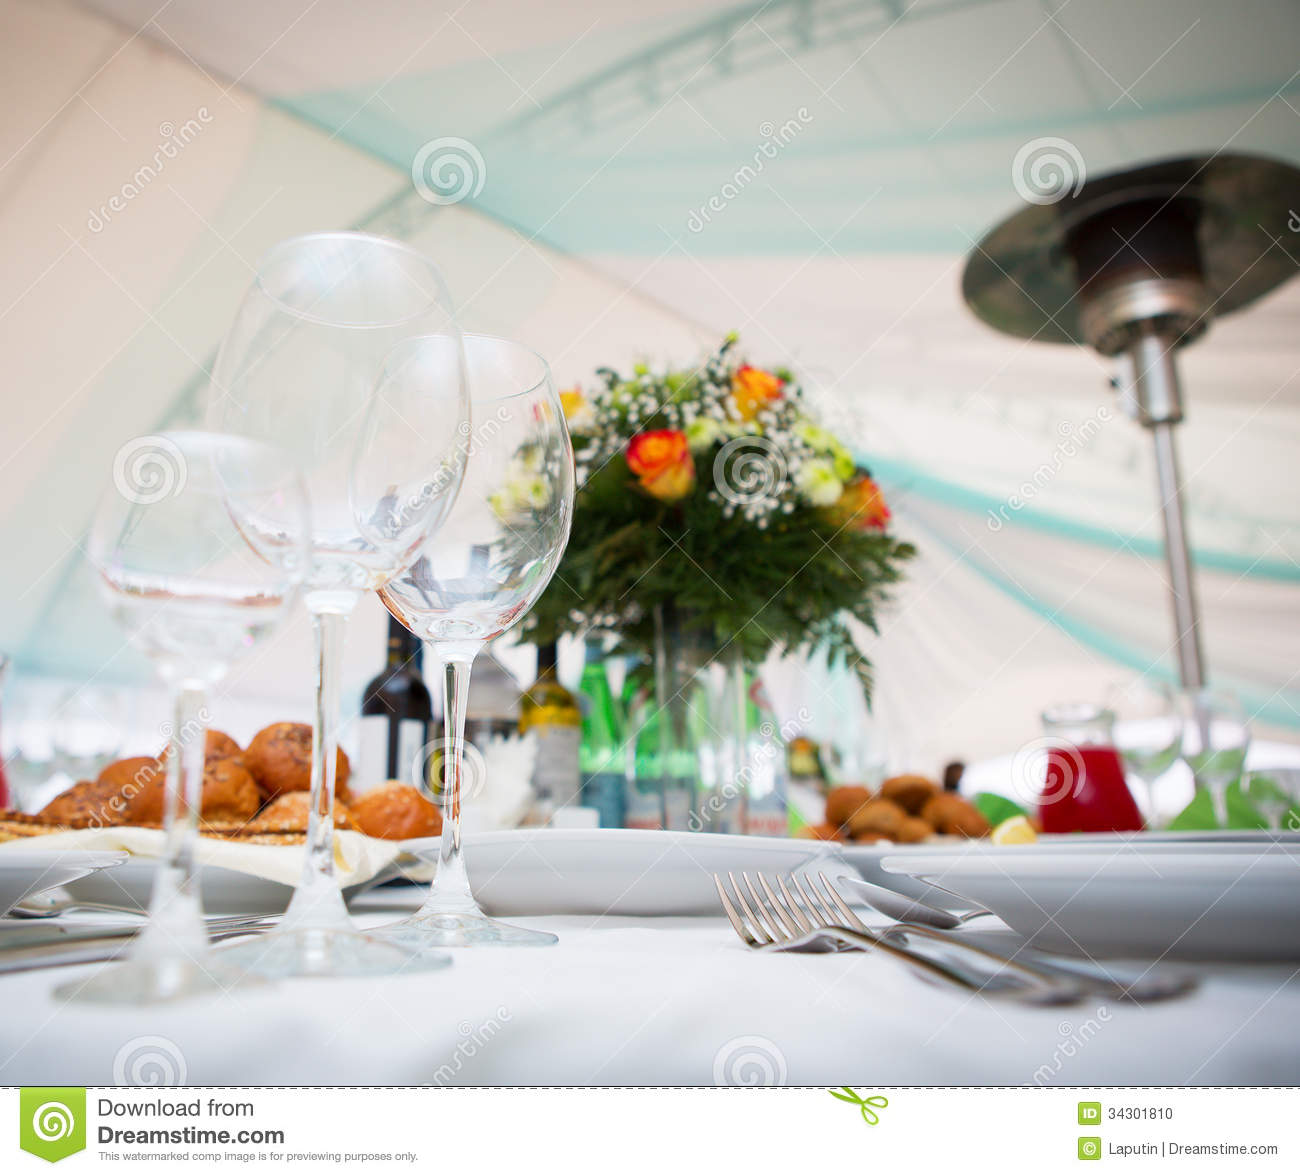 Place Setting stock photo Image of fork holiday  : place setting fine dining restaurant dinner table 34301810 from dreamstime.com size 1300 x 1176 jpeg 126kB